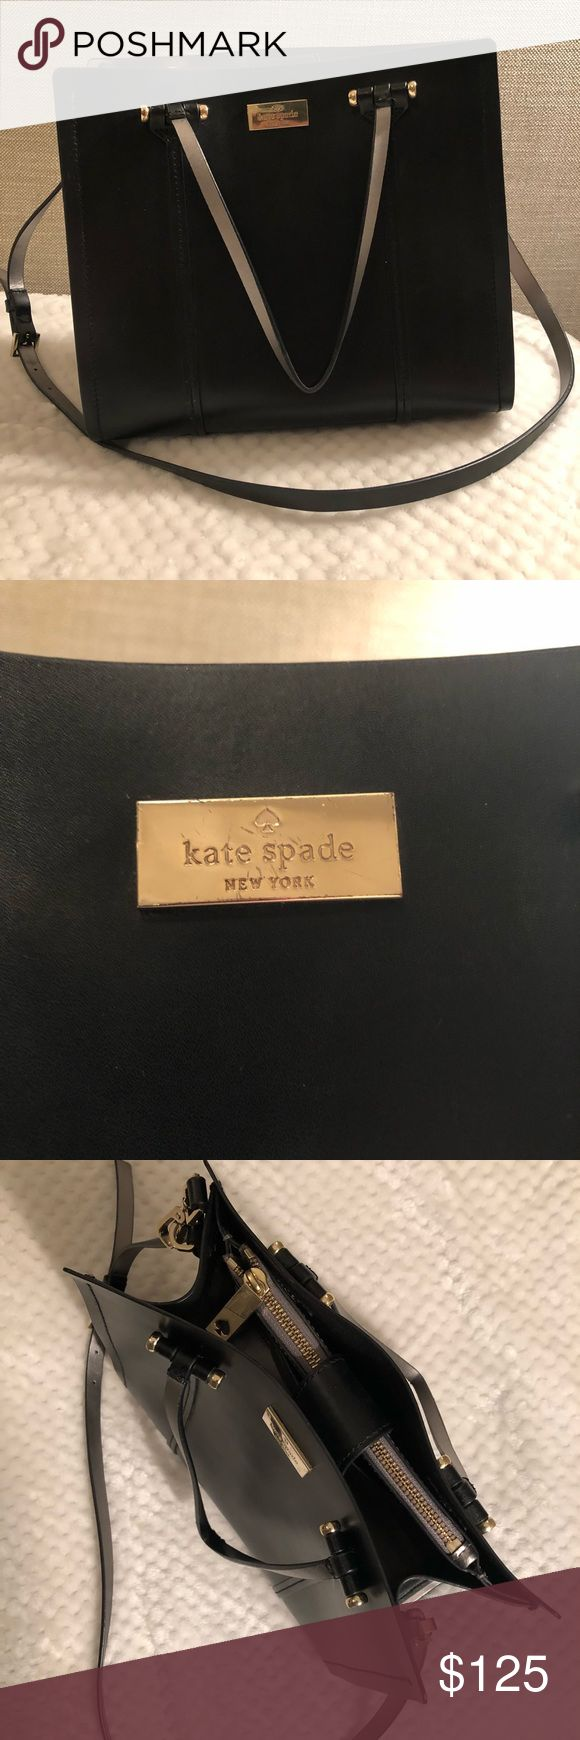 """Kate Spade Black Leather Purse Long strap measures 20"""" from shoulder to the top of the bag. Shorter straps are about 7"""" long. Bag itself measures 11"""" x 9"""" x 5""""  Features gold Kate Spade logo and gold details. Bottom of the bag has 4 round, gold feet. The short handles swivel up and down. The long handles are on spinning hardware.  Only been used once or twice - leather is in excellent condition. A few minor scratches on the metal, but overall the bag looks like new ✨ kate spade Bags Shoulder…"""